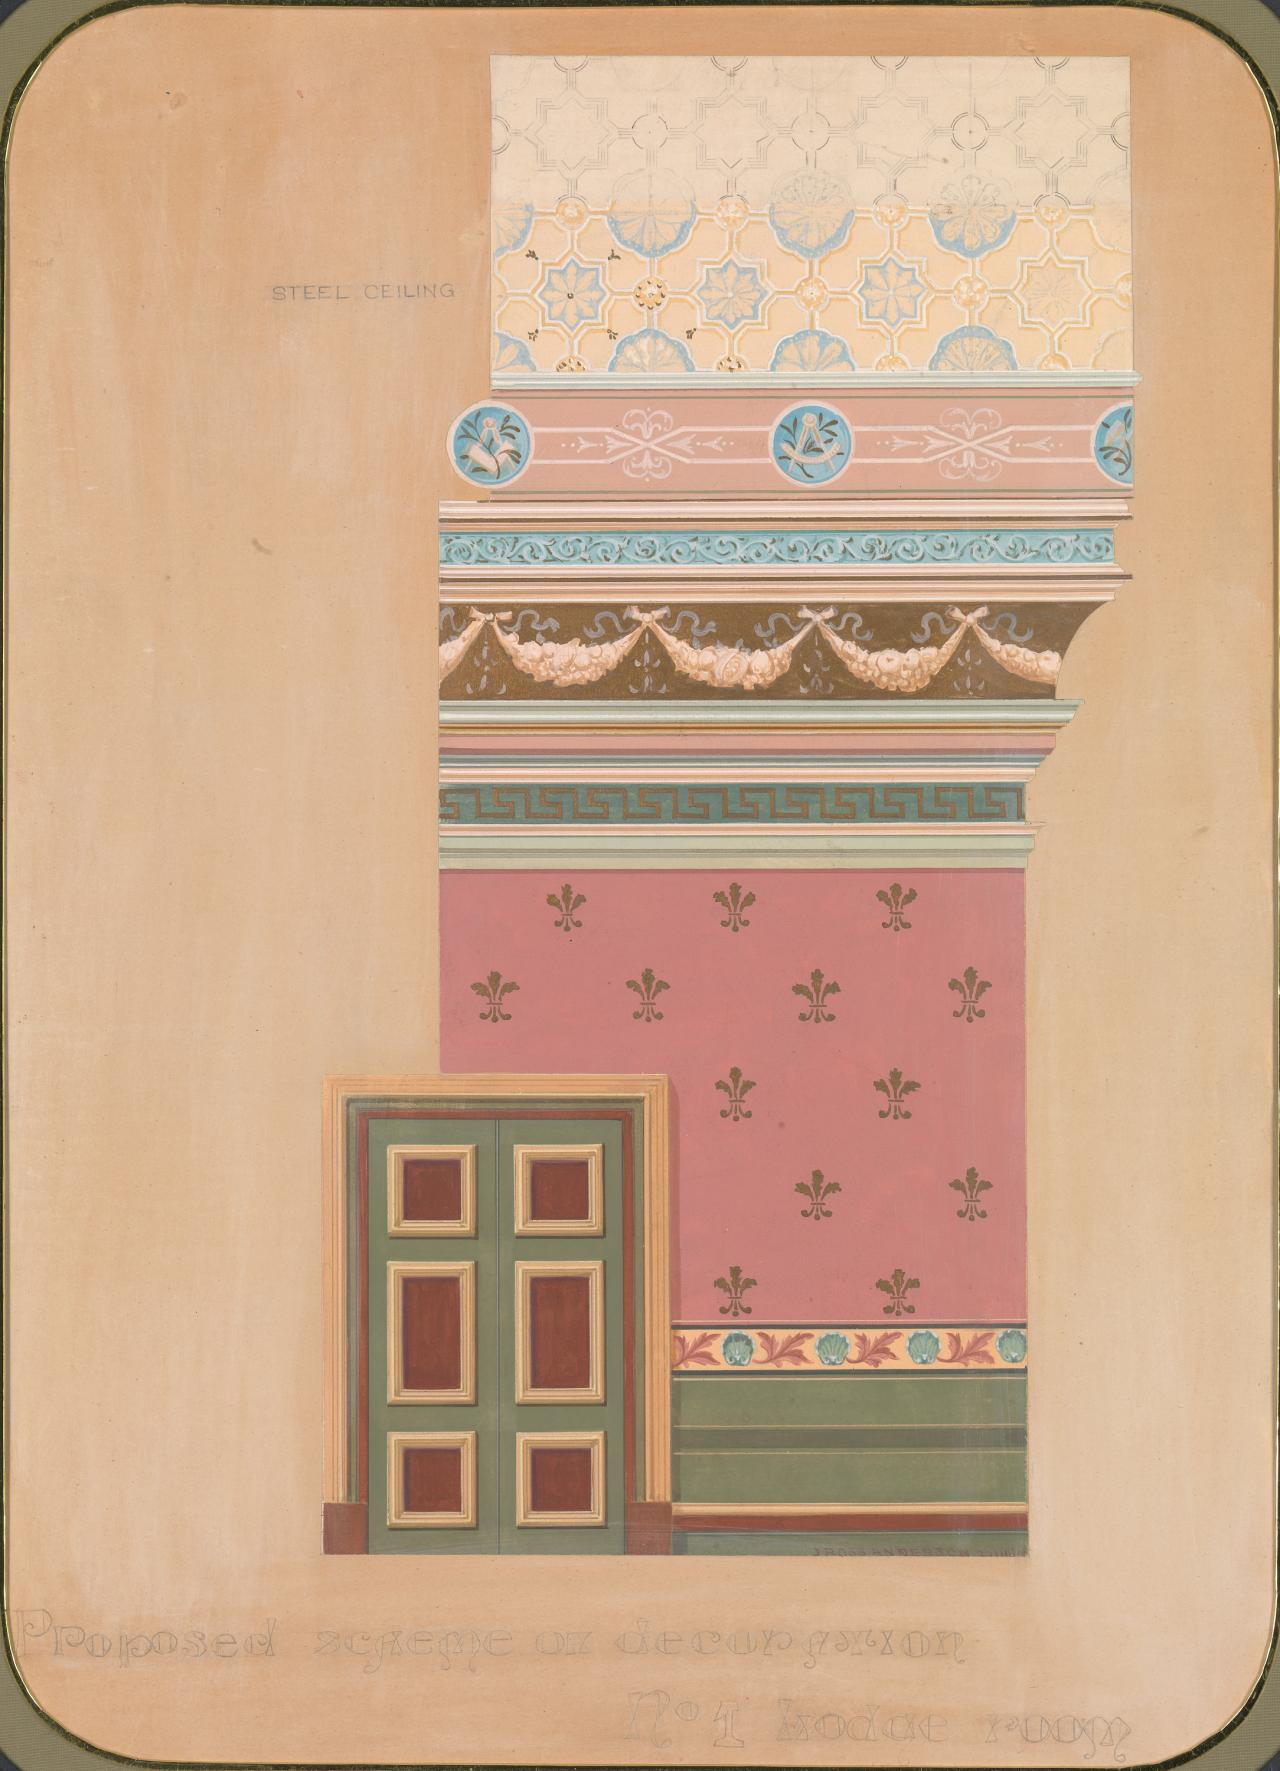 Proposed scheme of decoration, no. 1 Lodge room